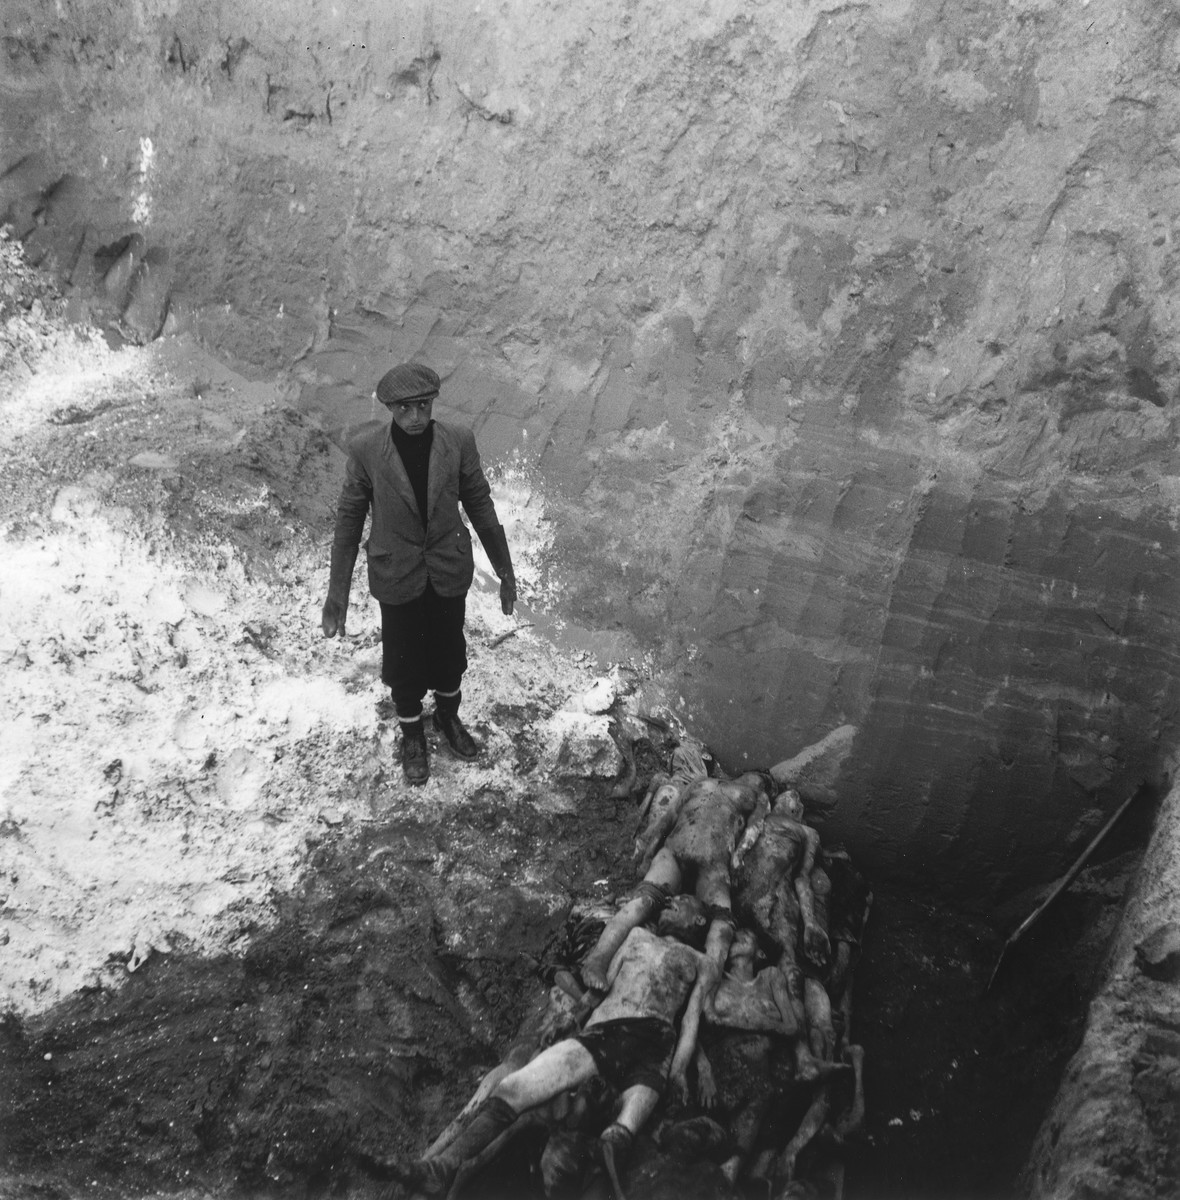 """A laborer at the Jewish cemetery on Okopowa Street buries bodies in a mass grave.  Joest's original caption reads: """"The man down below stood on the lime.  He had to place the corpses as close together as possible to save space."""""""